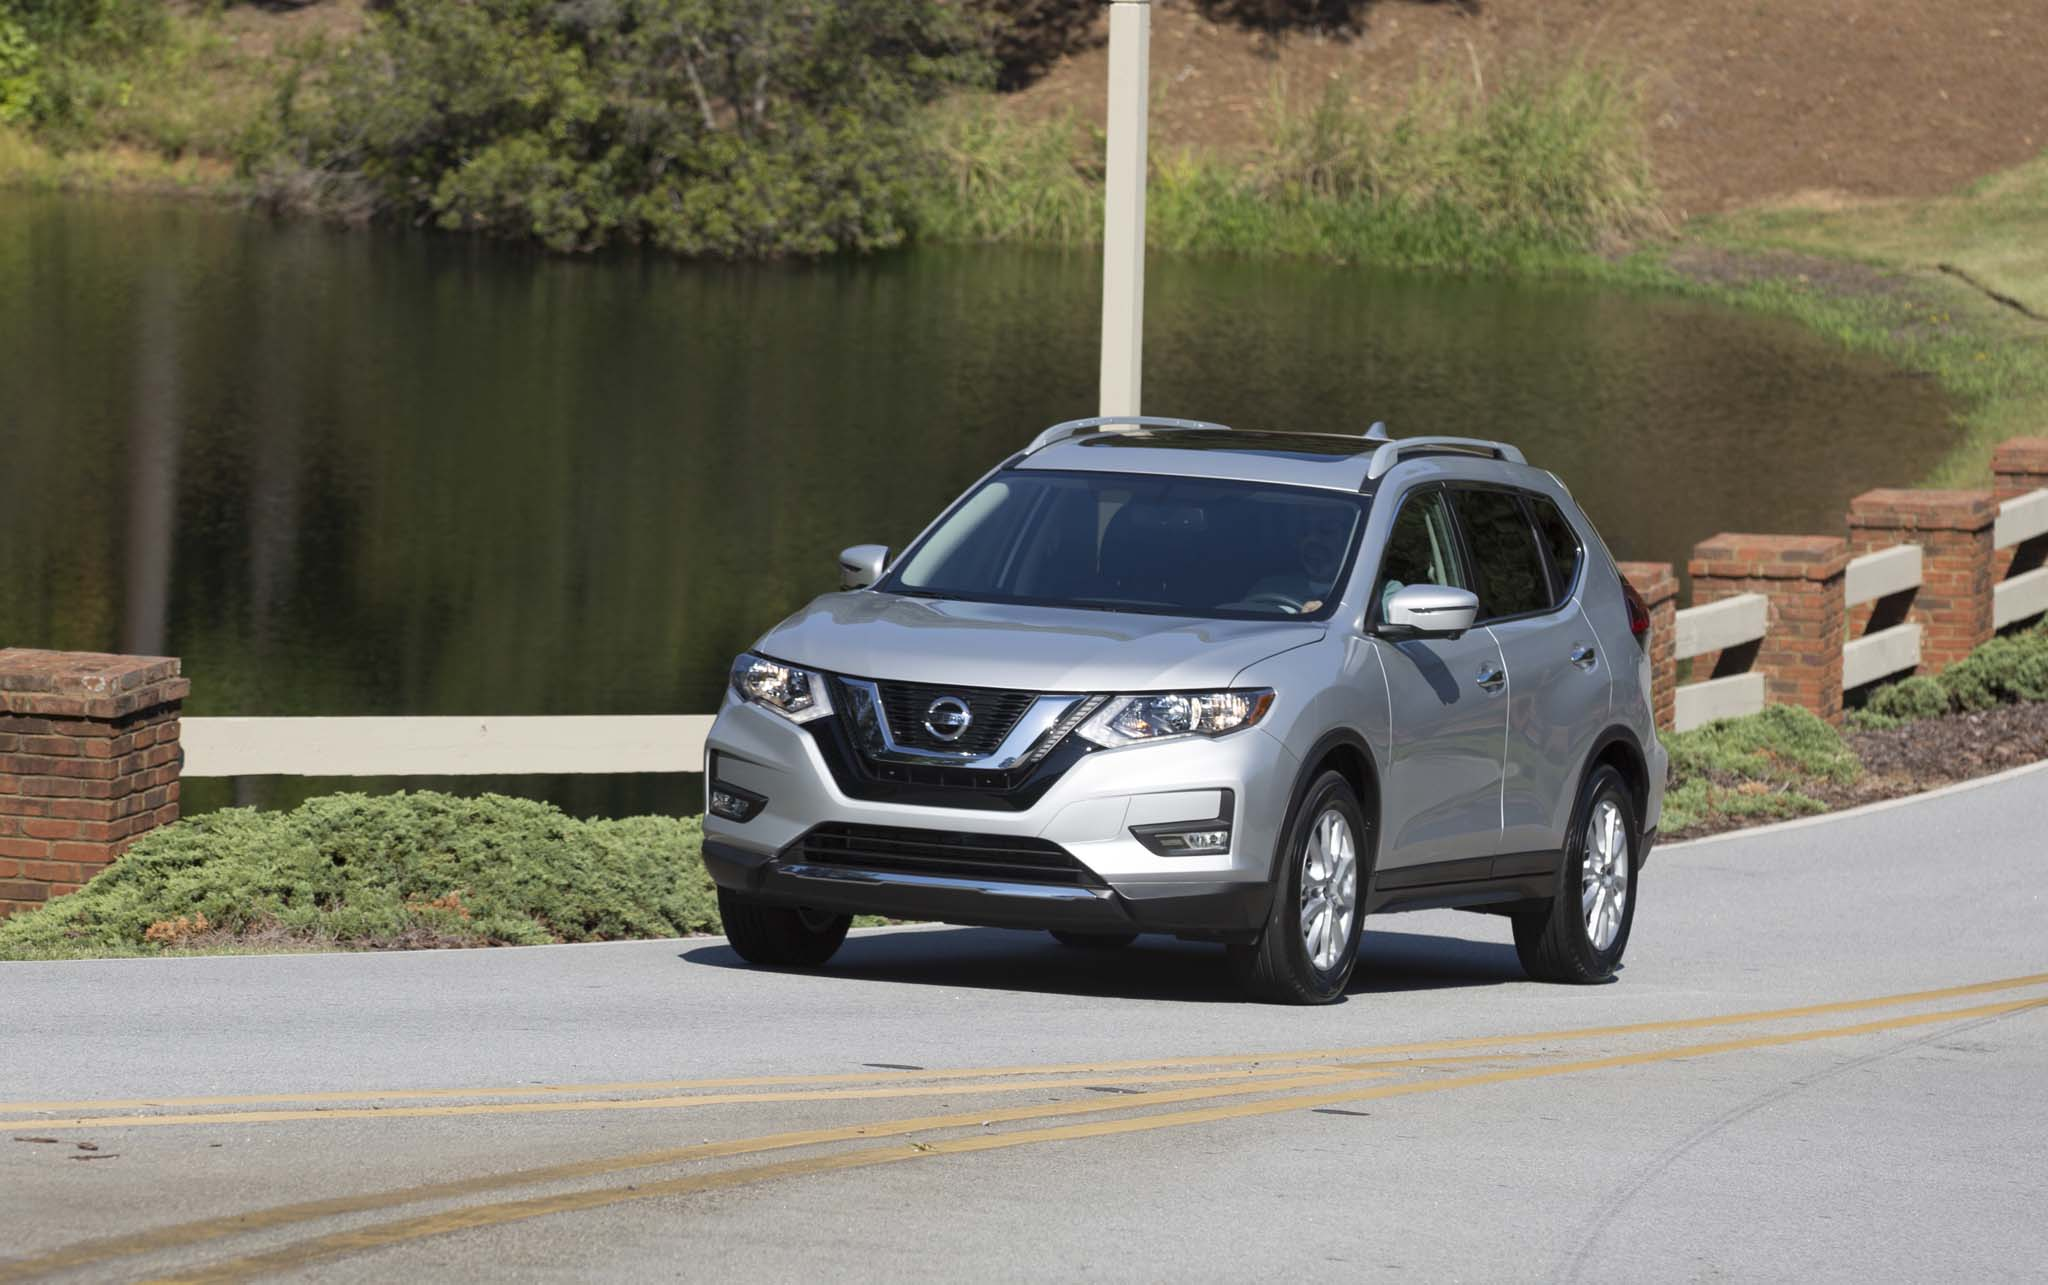 2017 Nissan Rogue Front Three Quarter 08